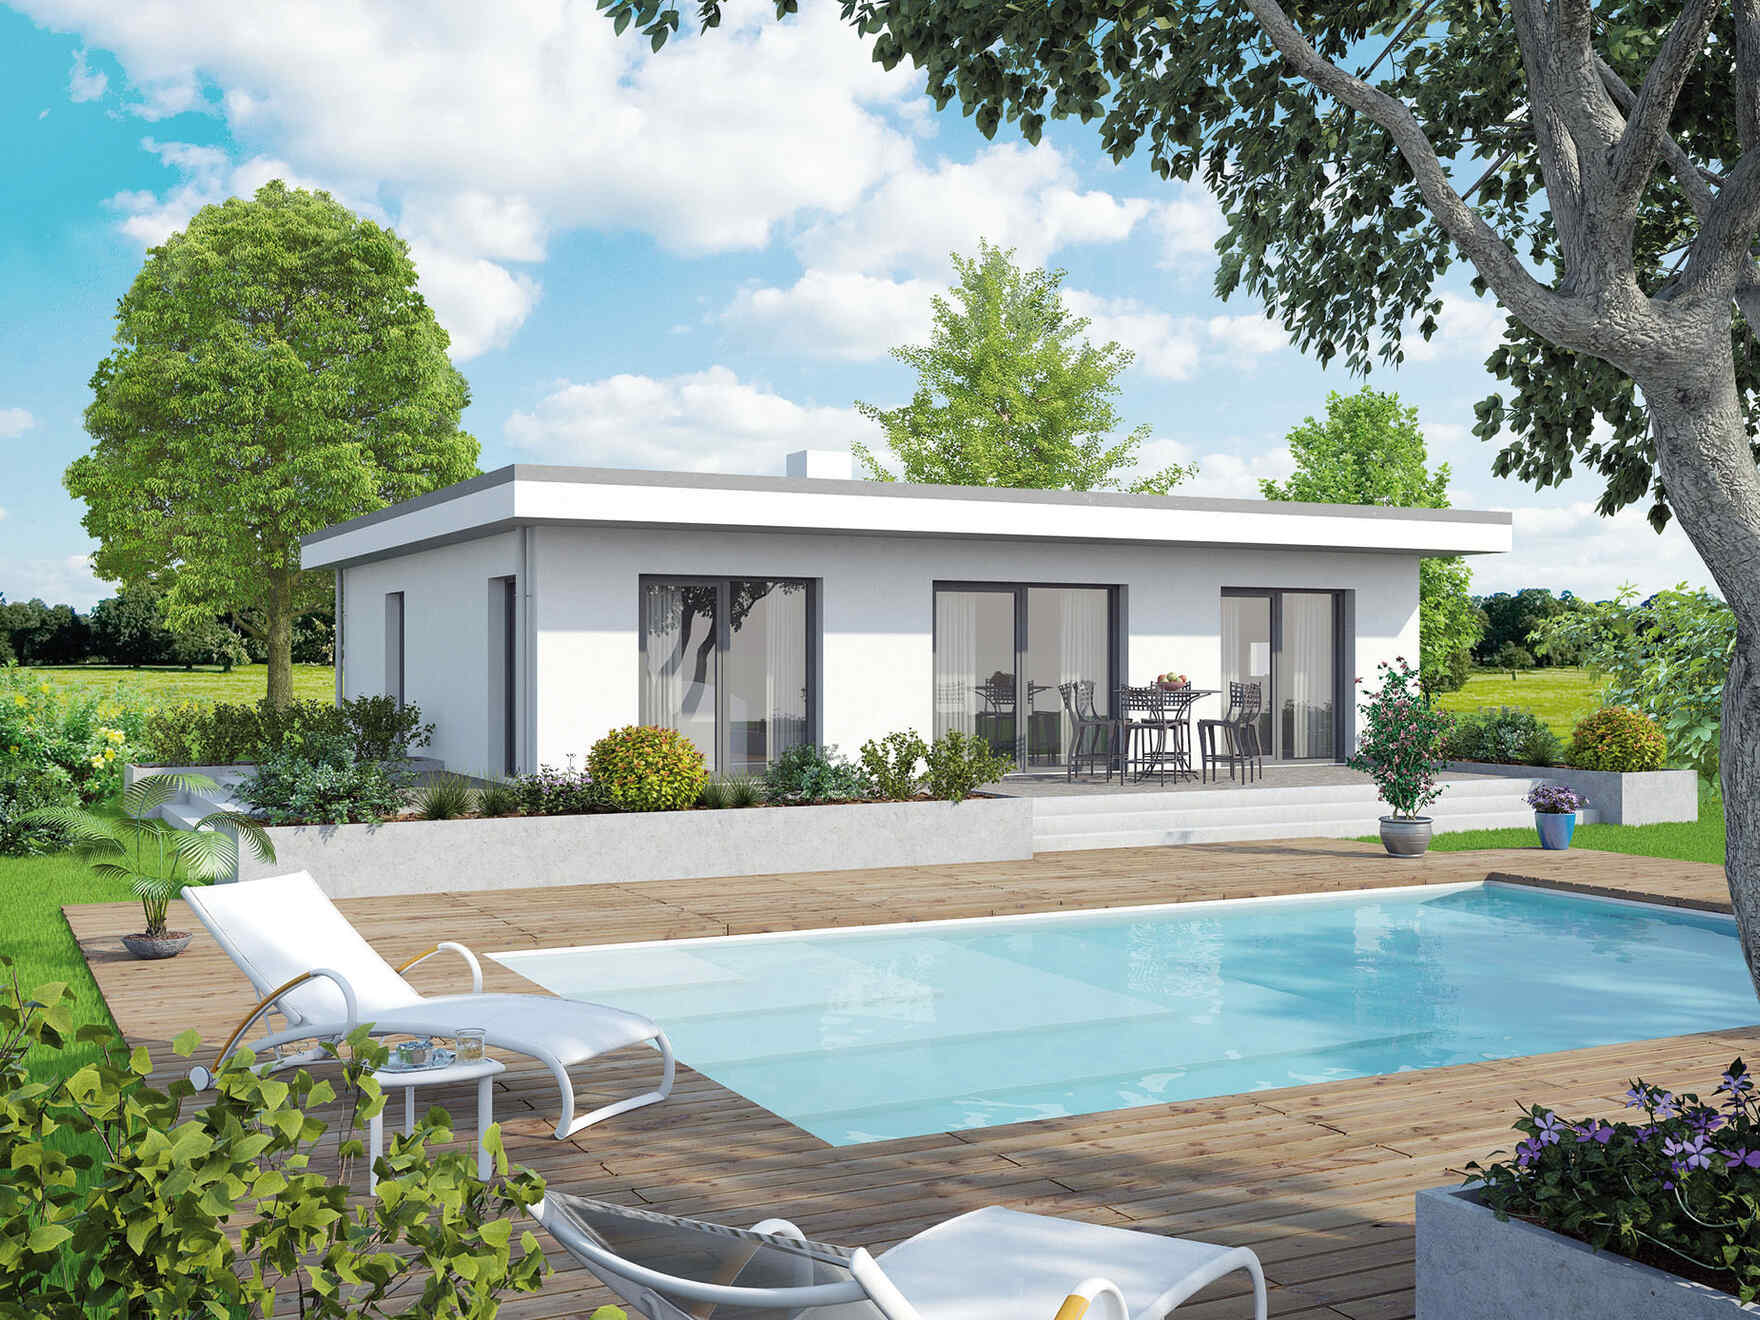 Pool Kaufen Sale Fertighaus Bungalow New Design Vs Vario Haus